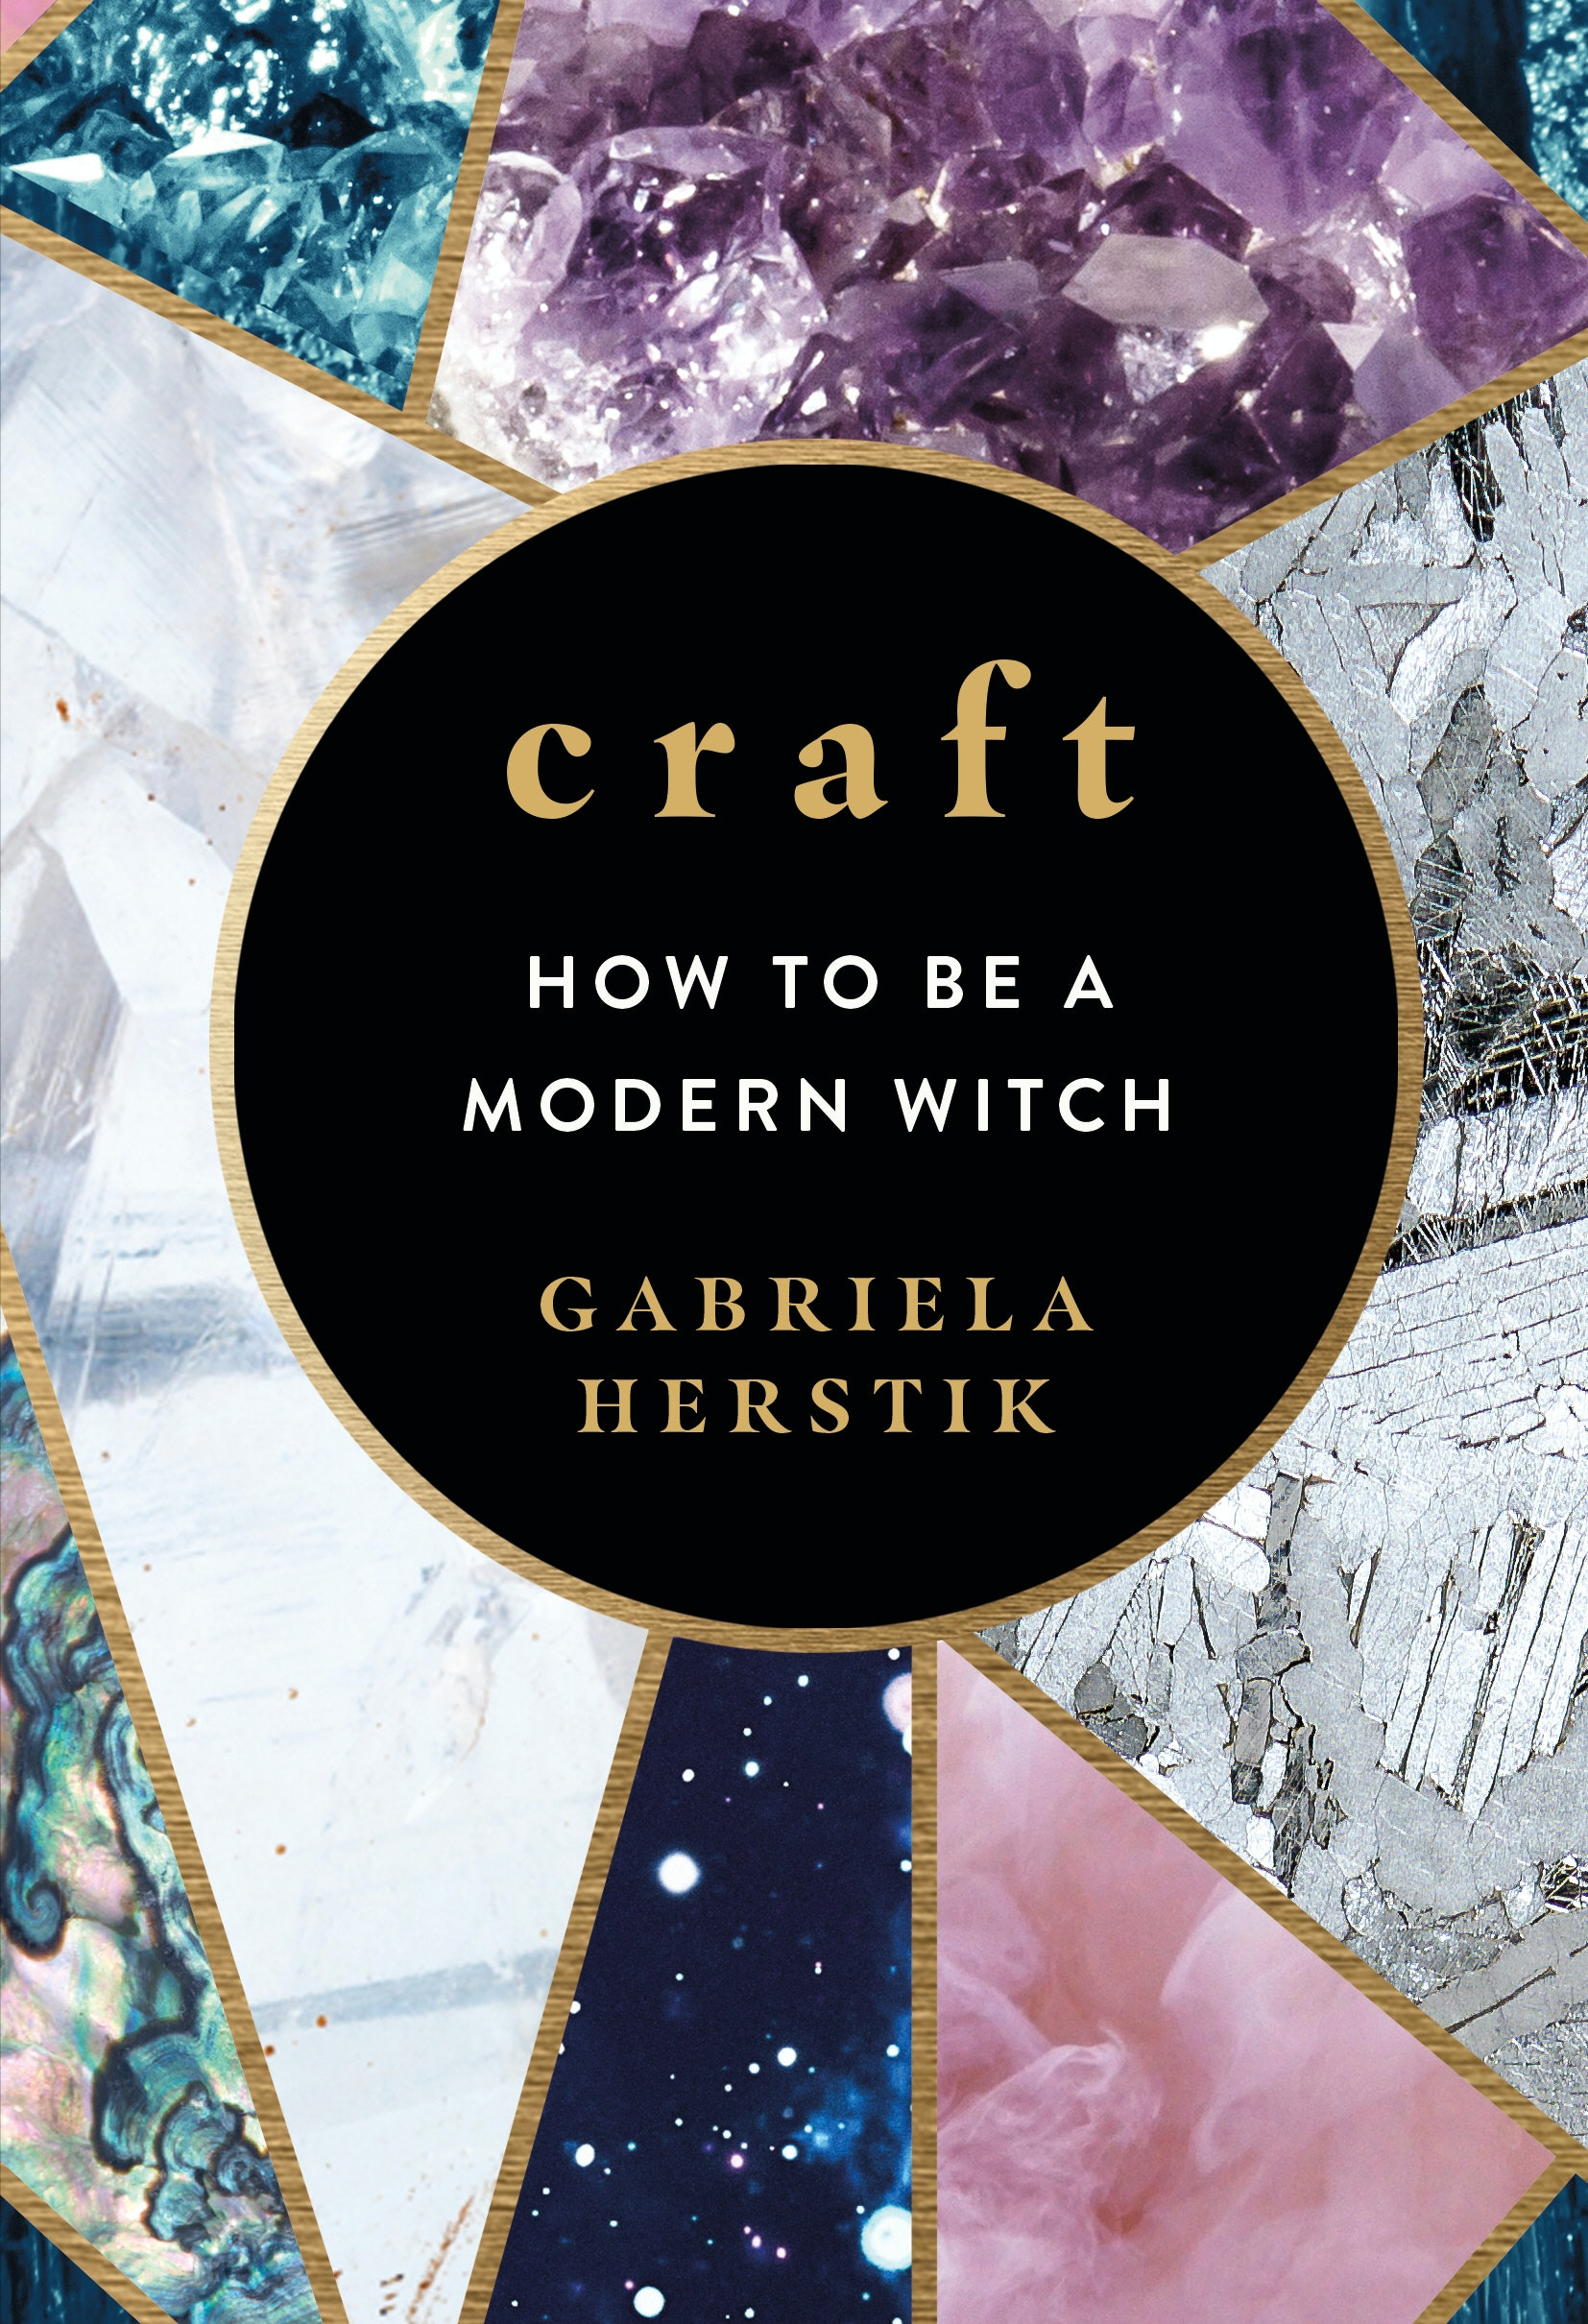 13 Witchy Books To Read With Your Coven This Fall